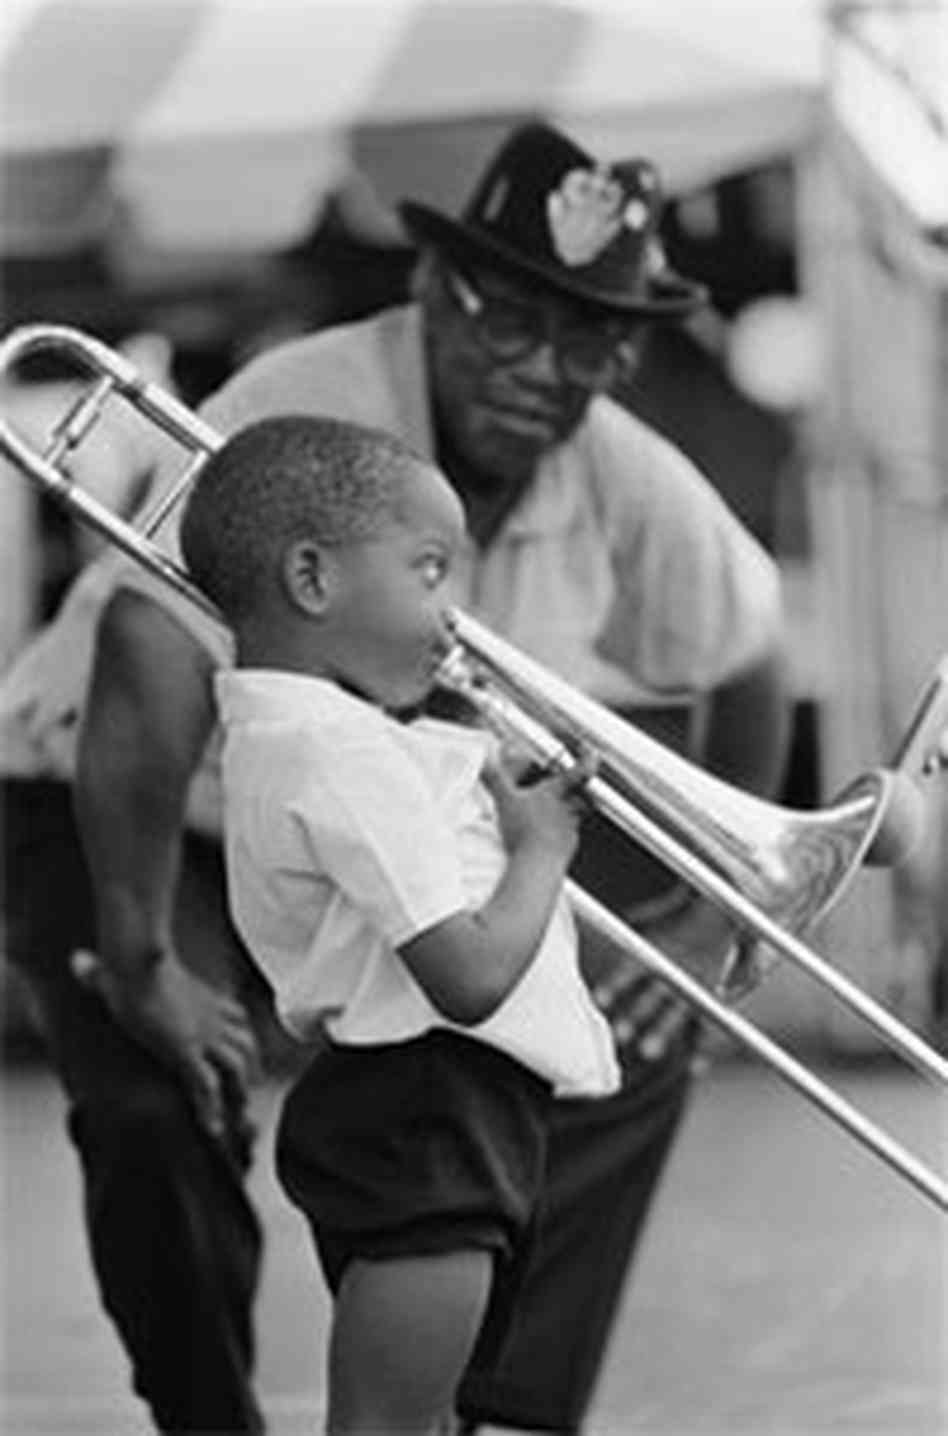 A very young Trombone Shorty plays while Bo Diddly looks on.